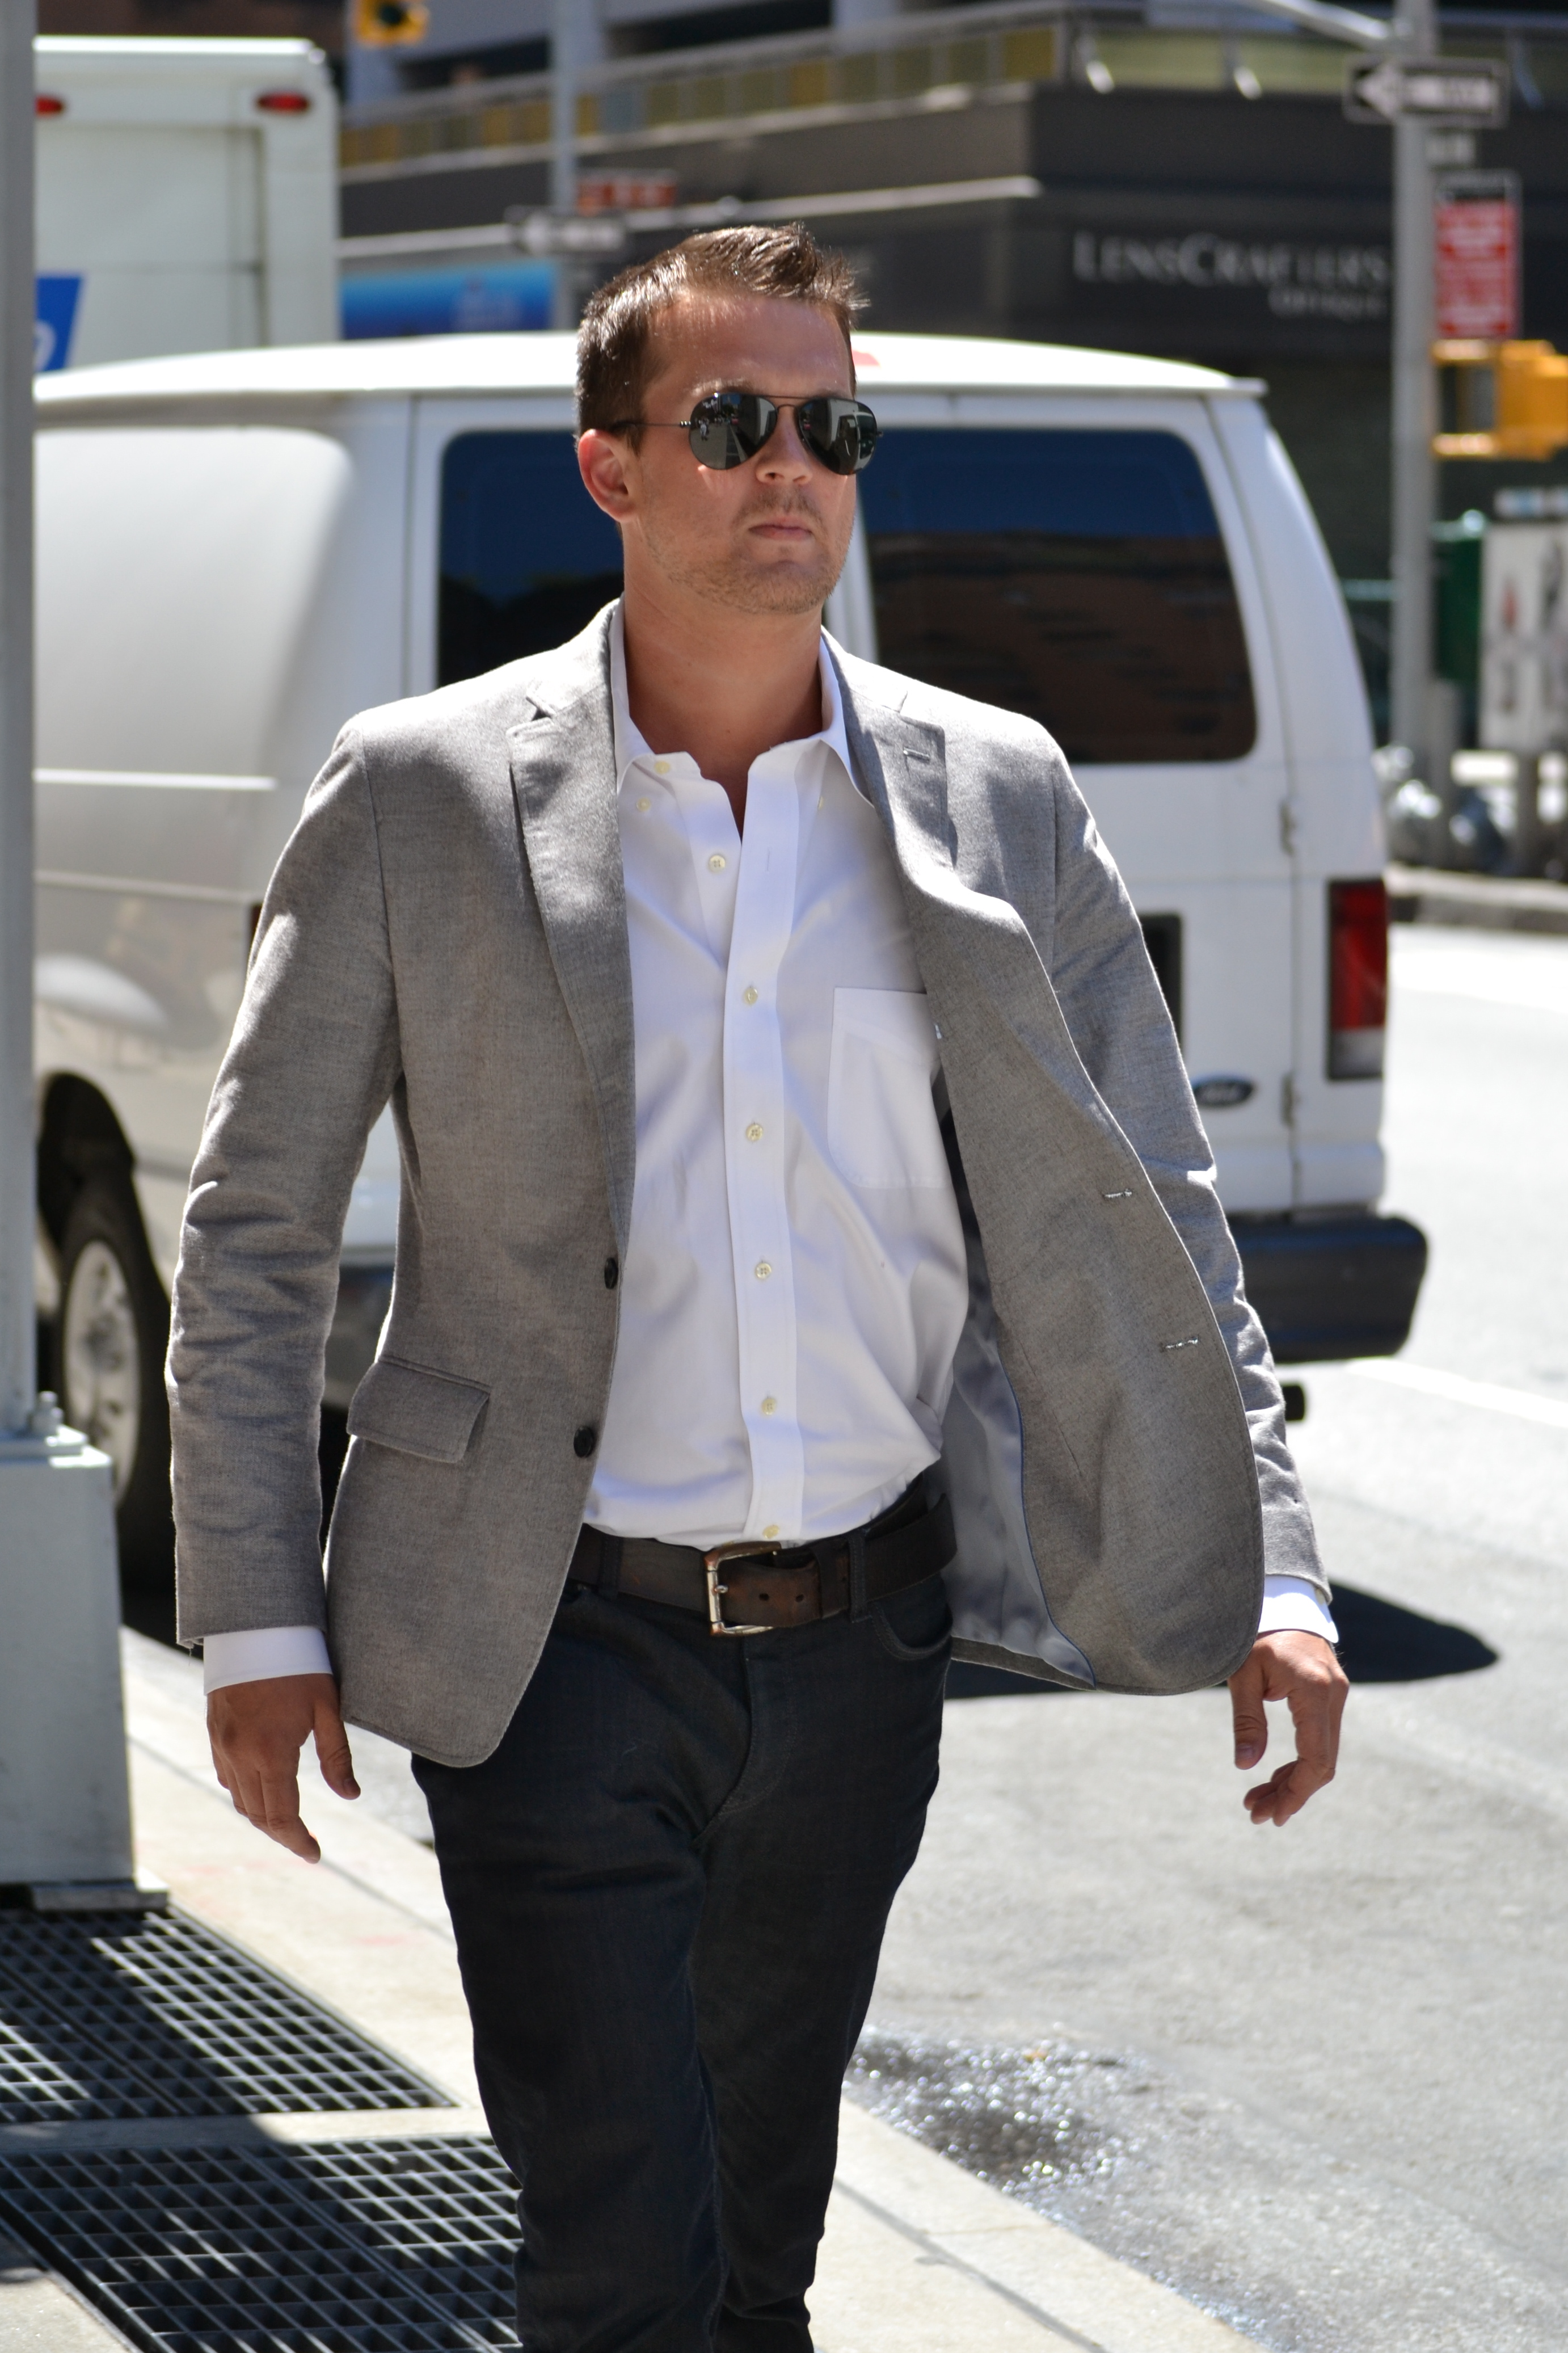 Business for Polo shirt with sport coat